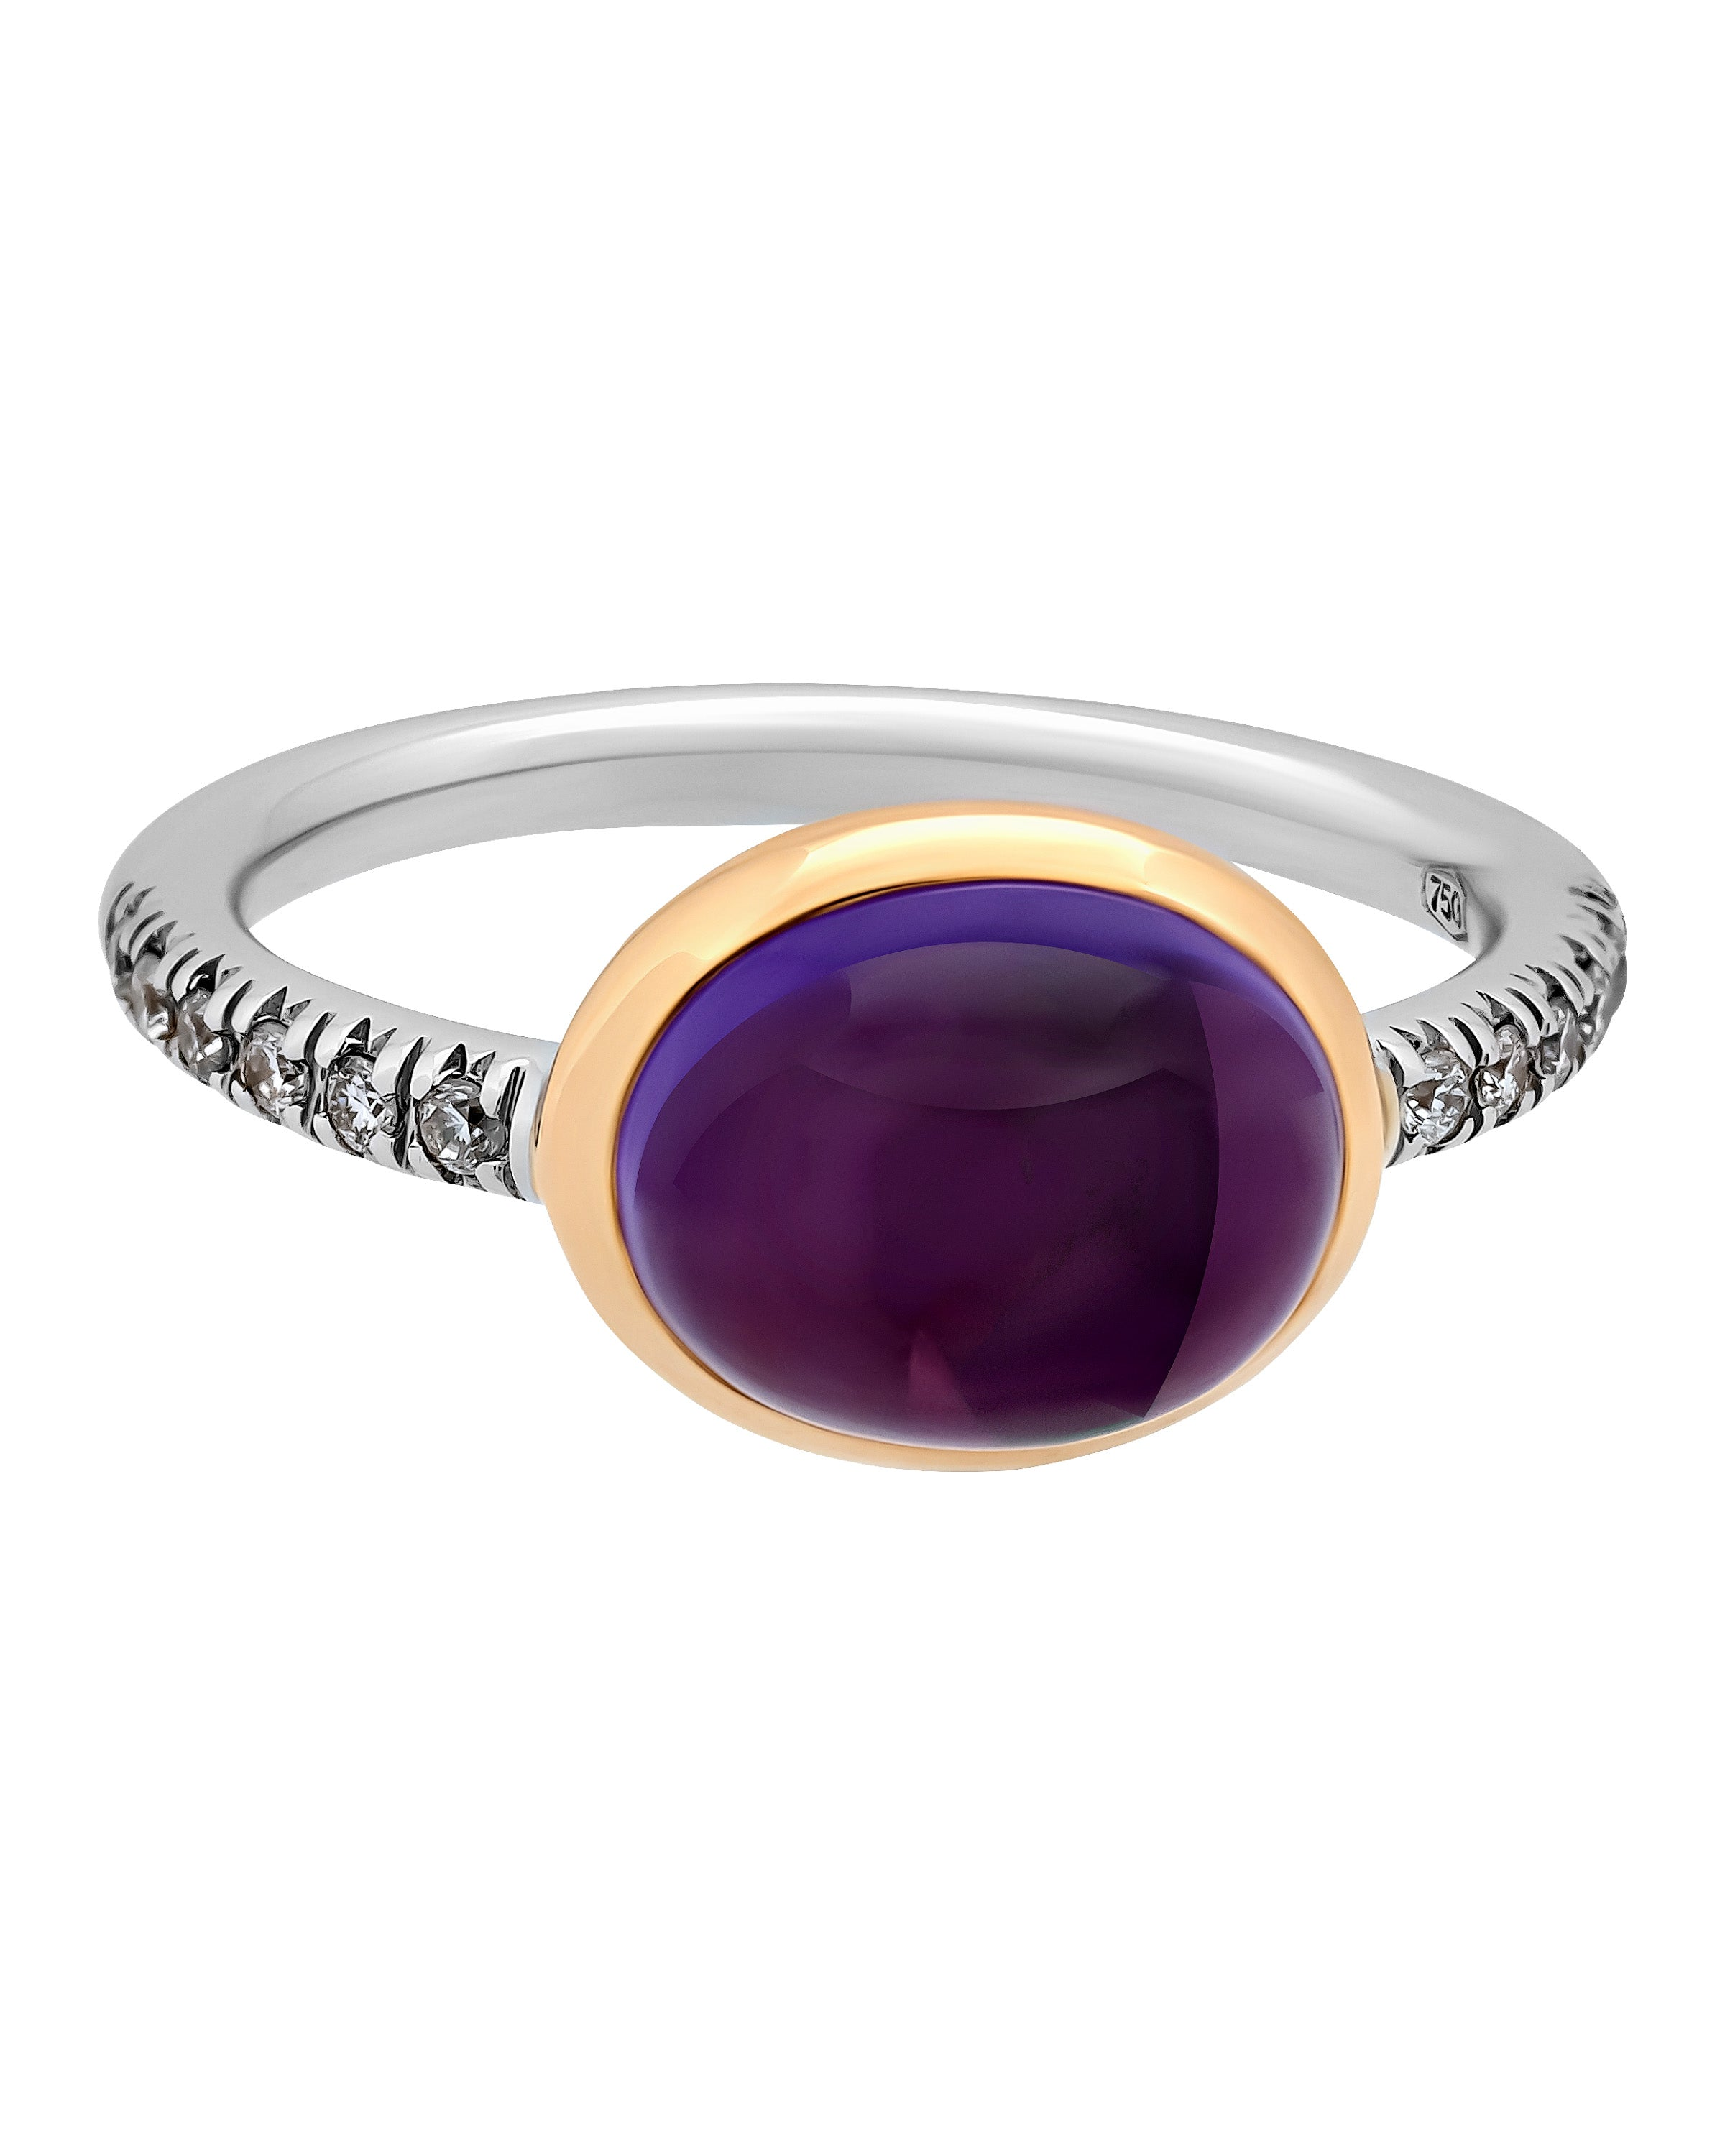 Mimi Milano 18k Rose White Gold Diamonds And Amethyst Ring A298C8AB